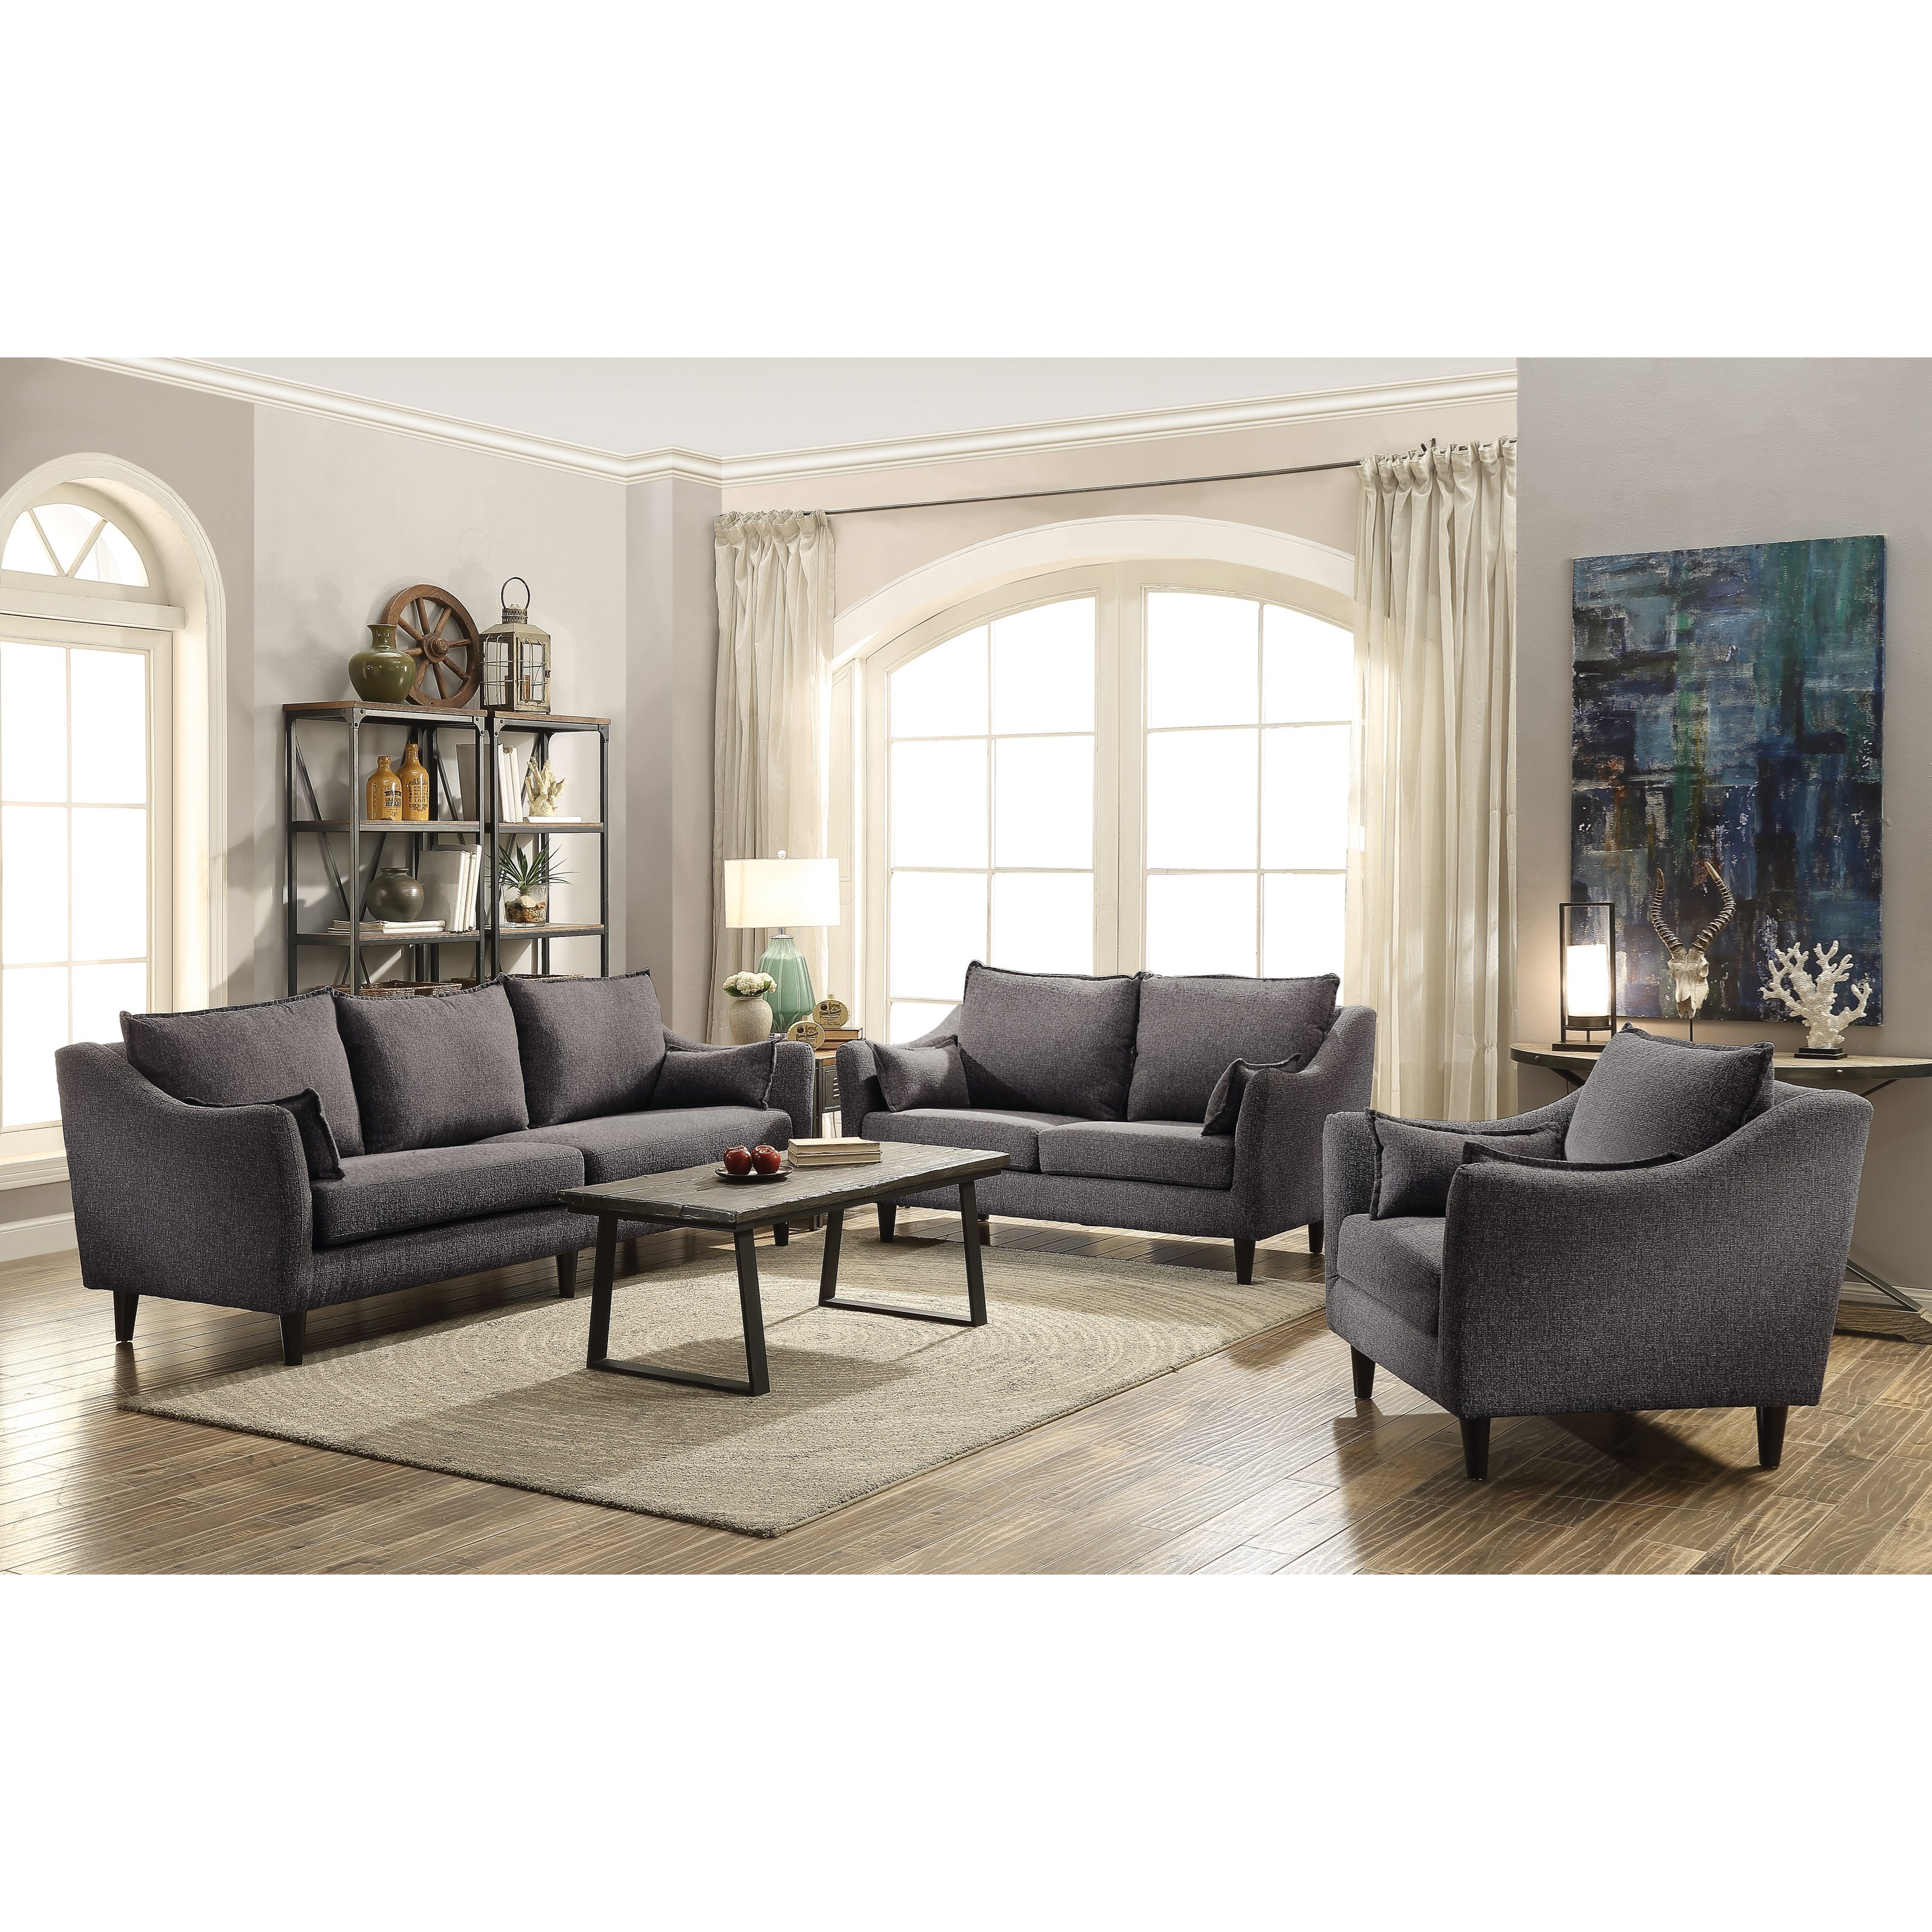 Coaster Rhys Stationary Living Room Group Value City Furniture Stationary Living Room Groups